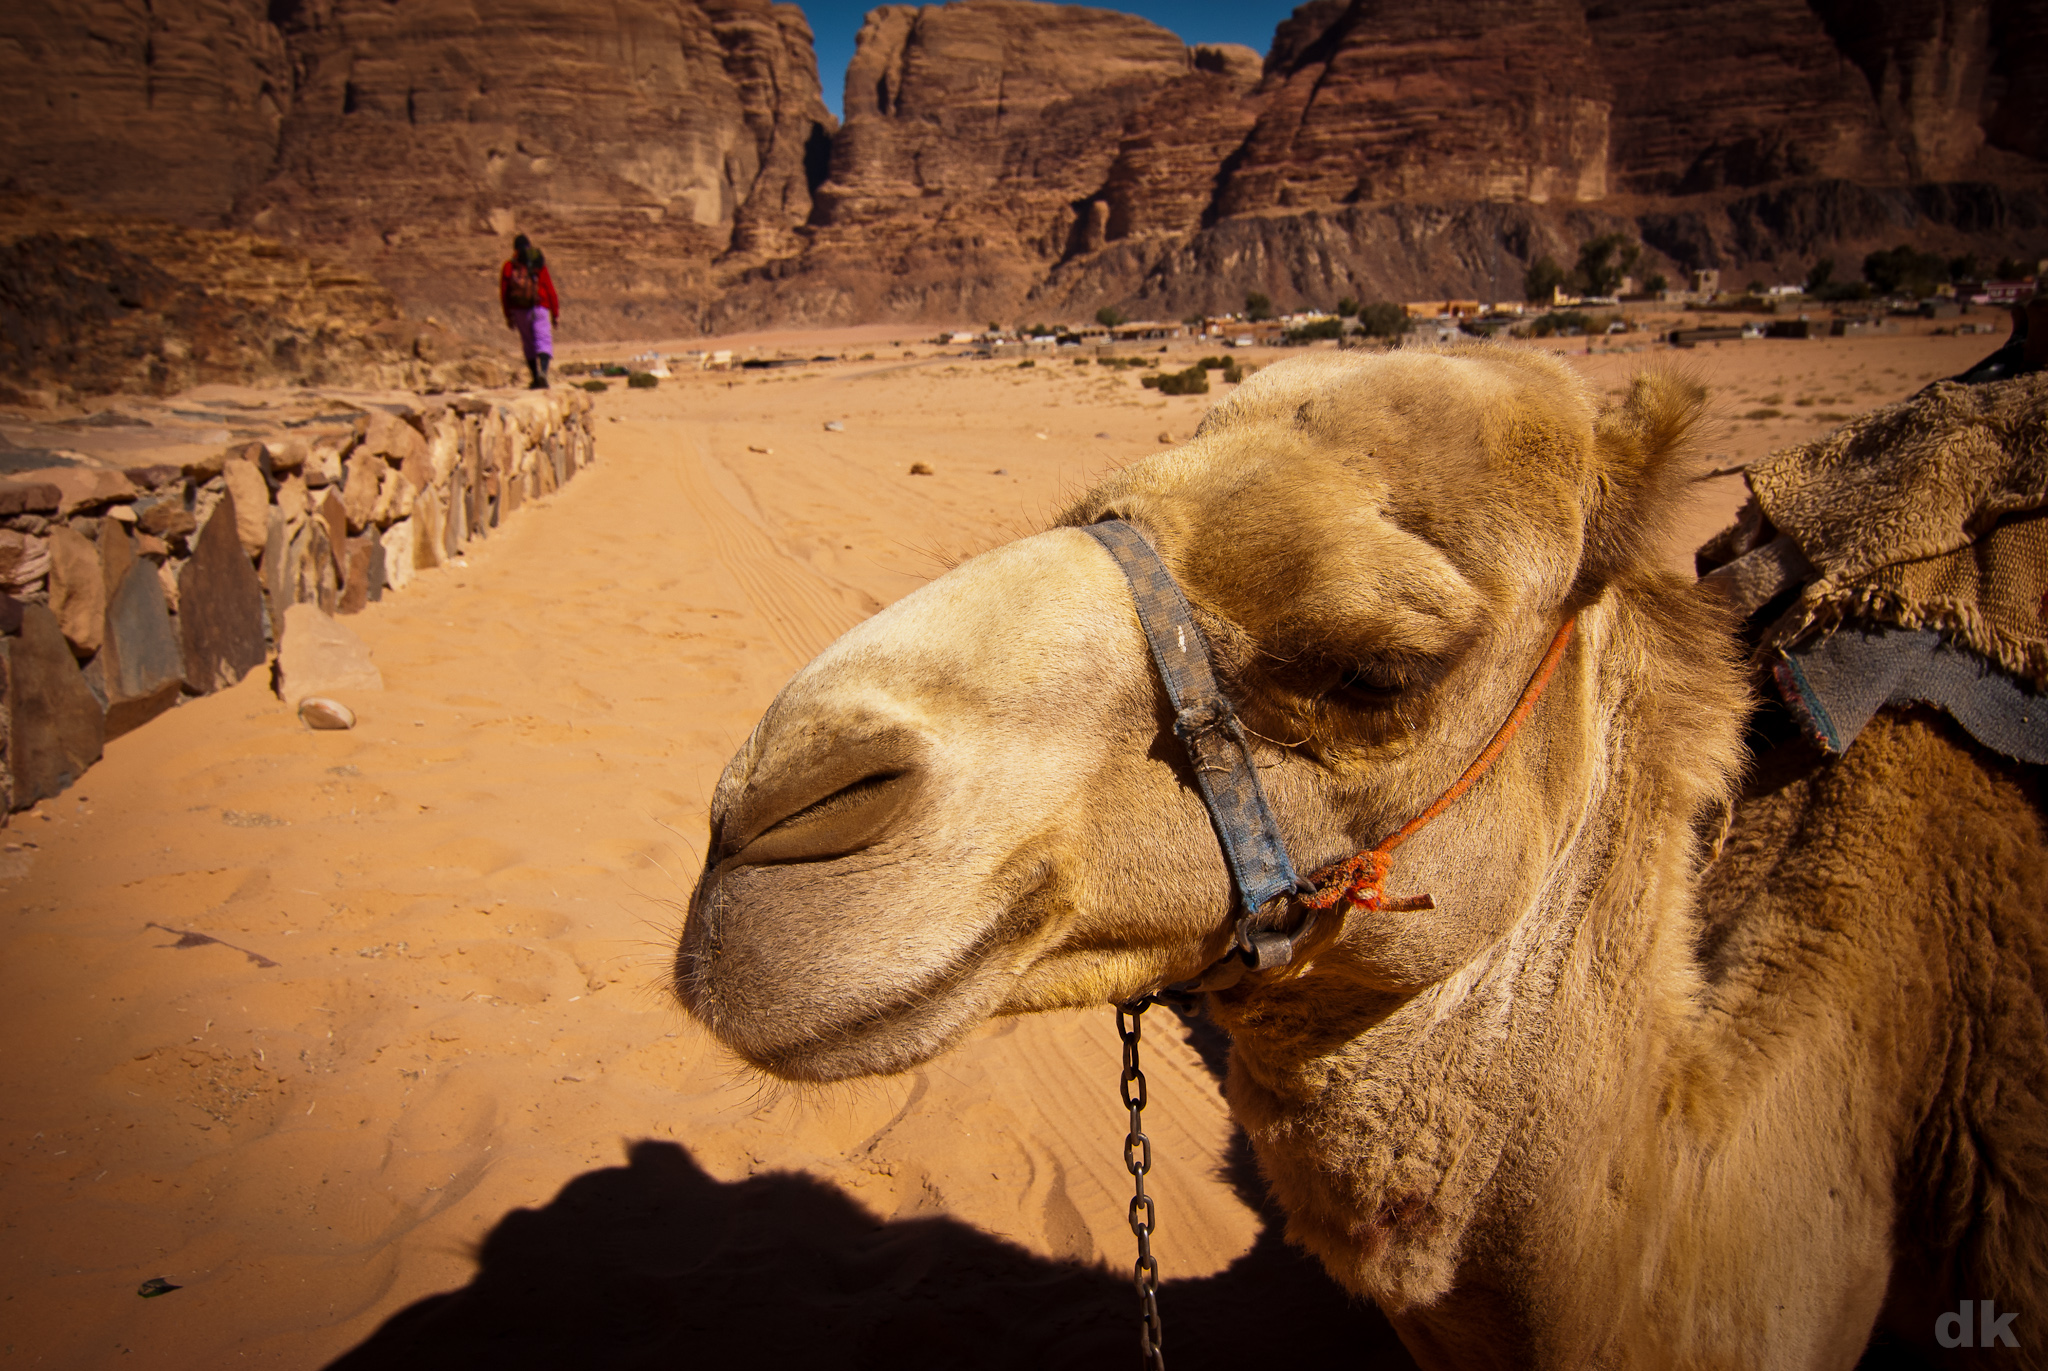 Camel at Wadi Rum, Jordan